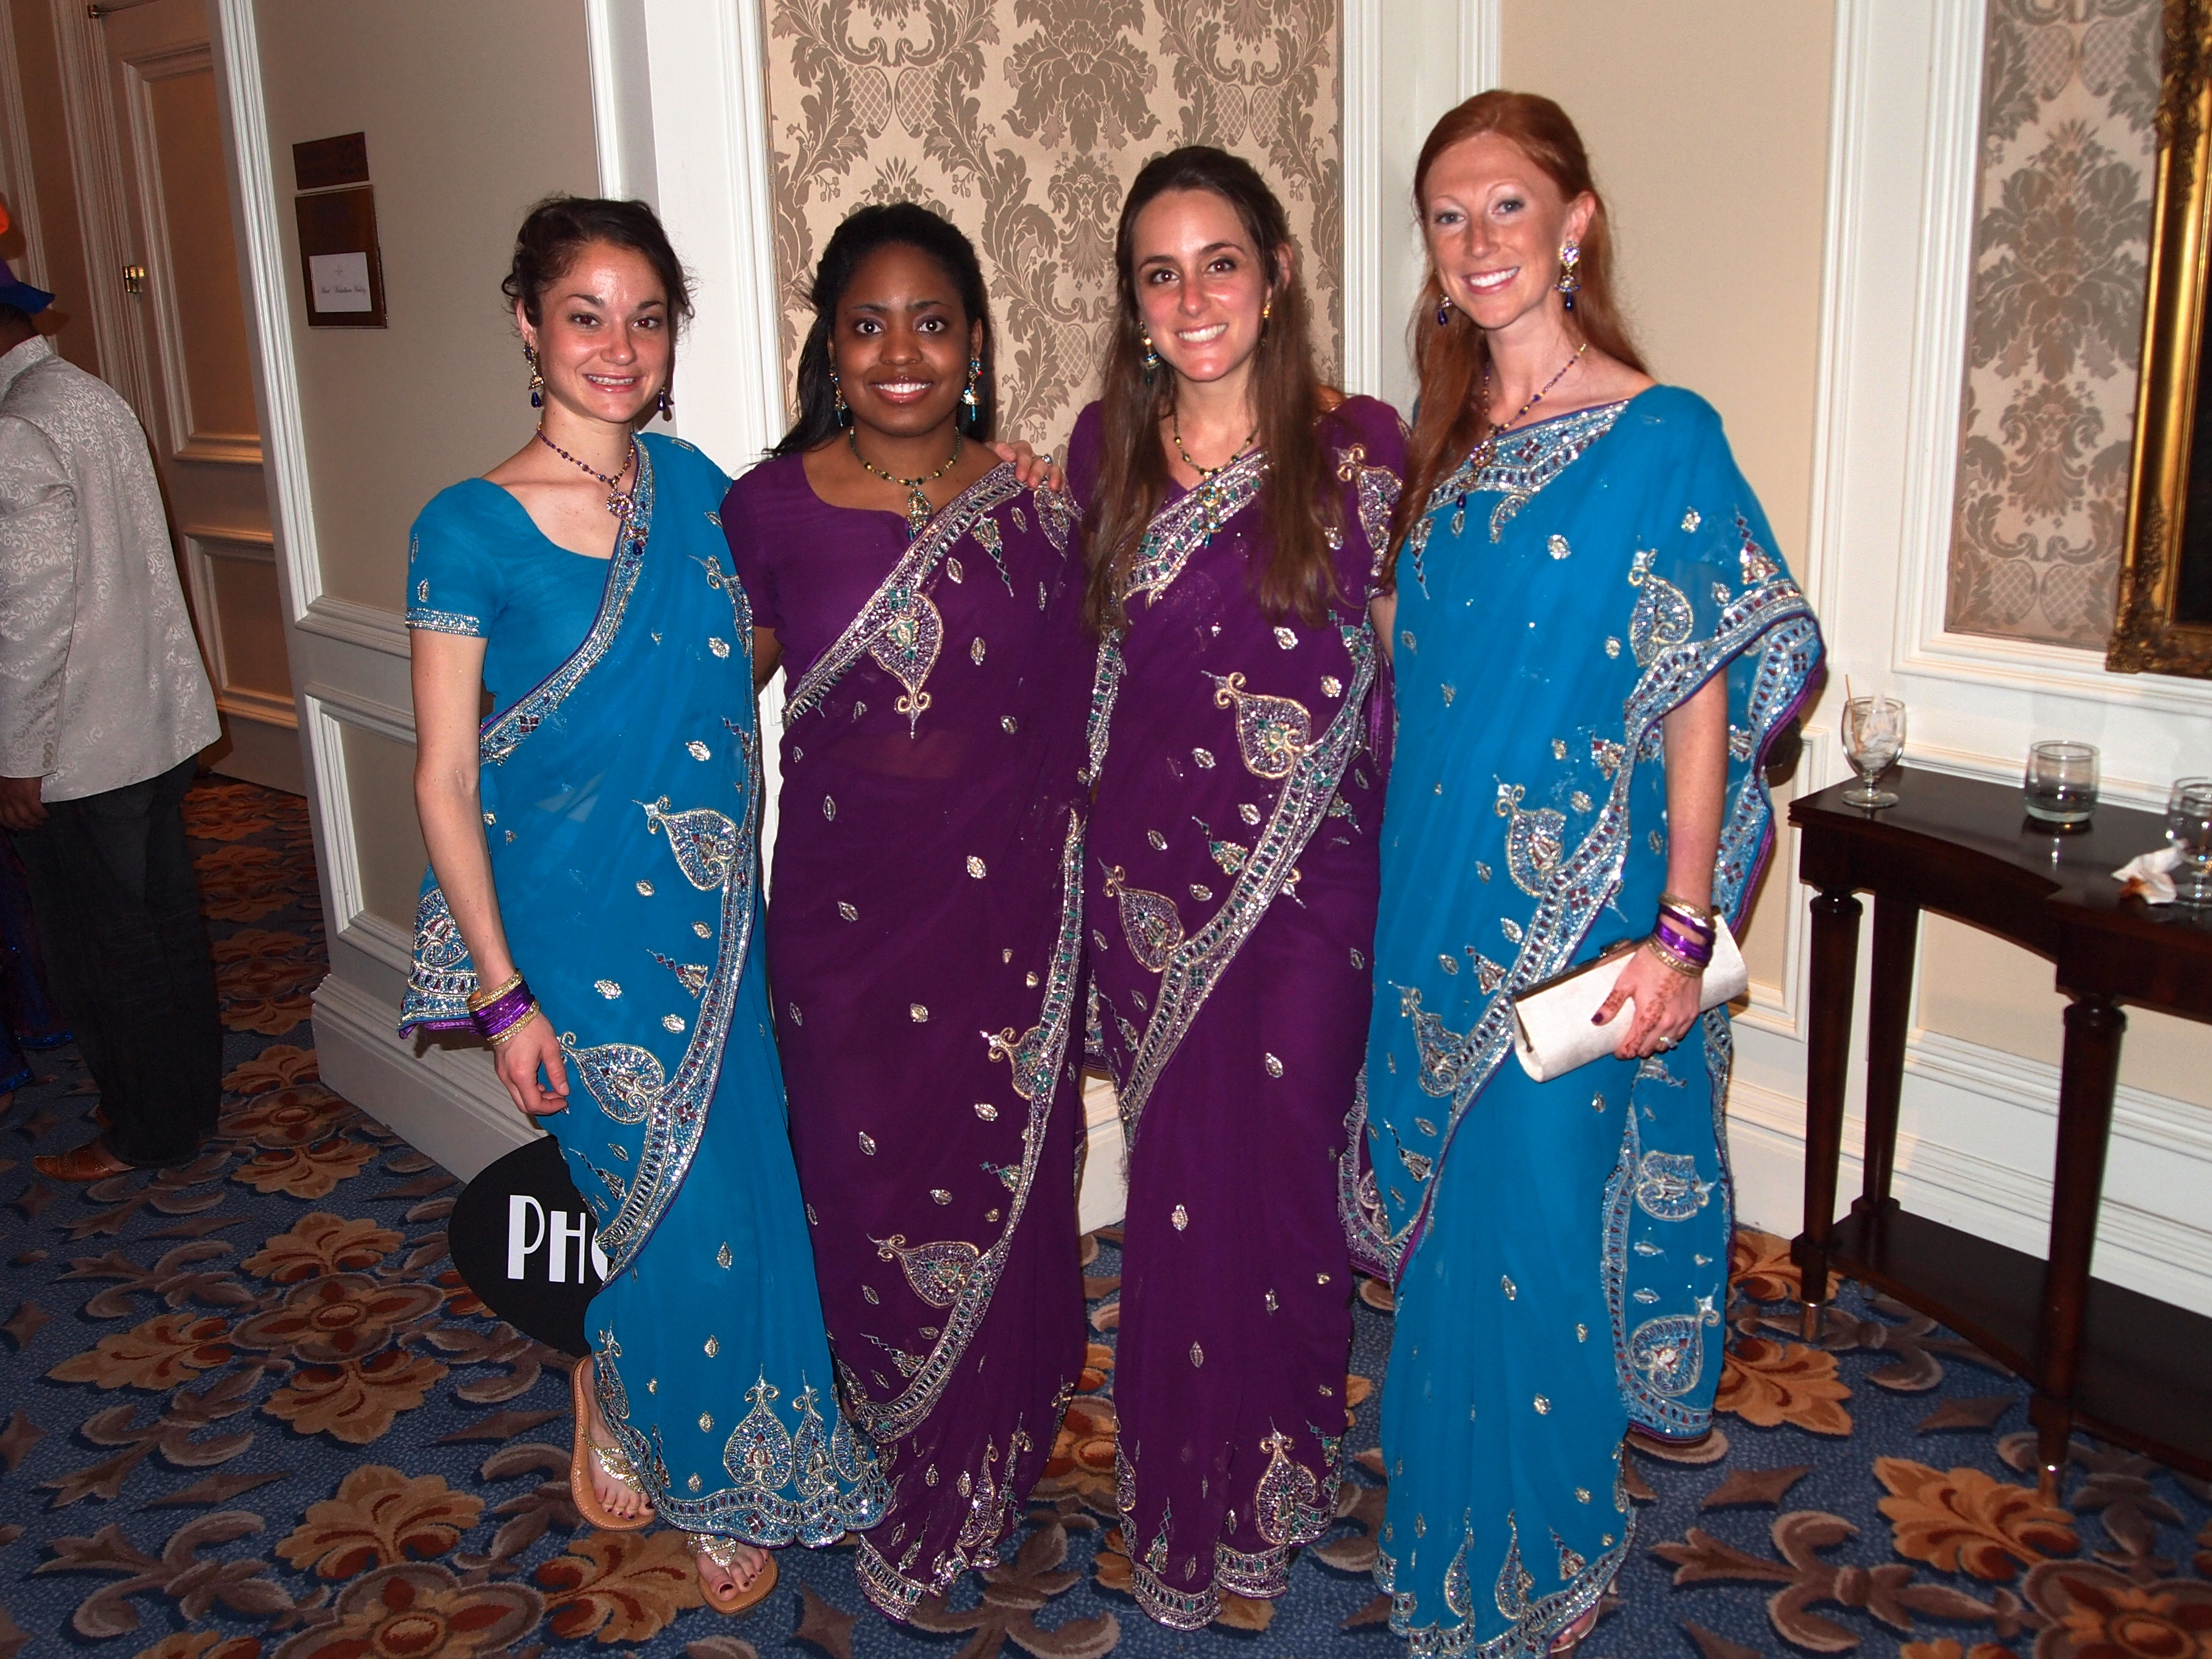 Wedding Night Gift For Indian Groom : An Indian Wedding: Finishing the night with a horse ride, dinner and ...